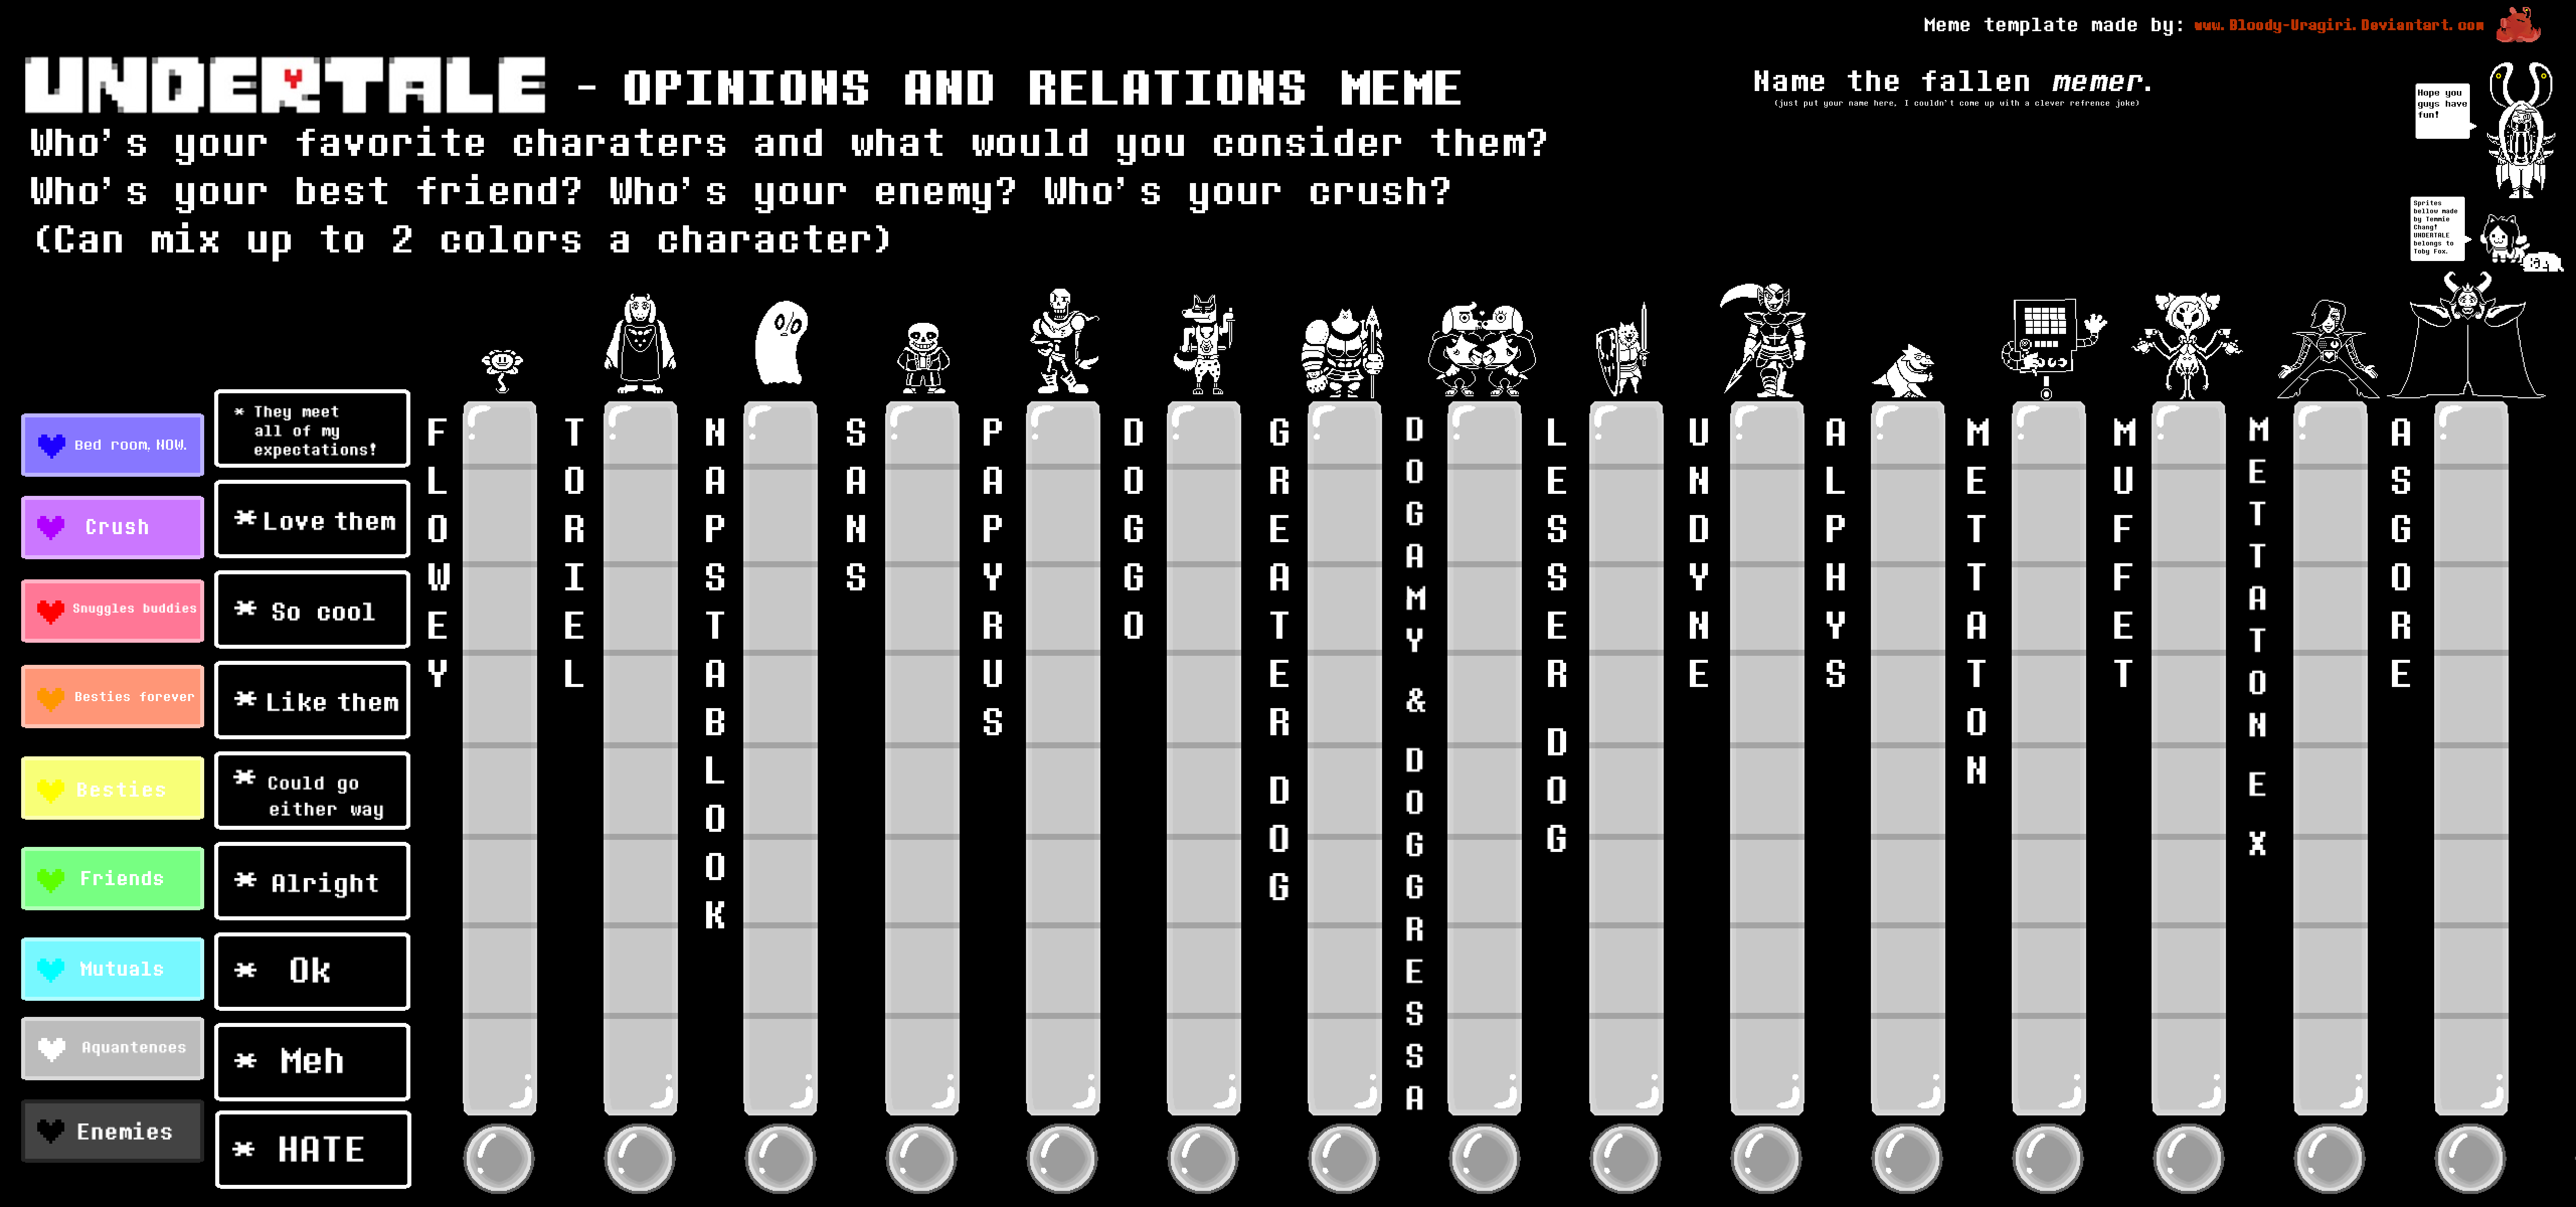 Undertale Opinions And Relations Meme Template By Bloody Uragiri On Deviantart